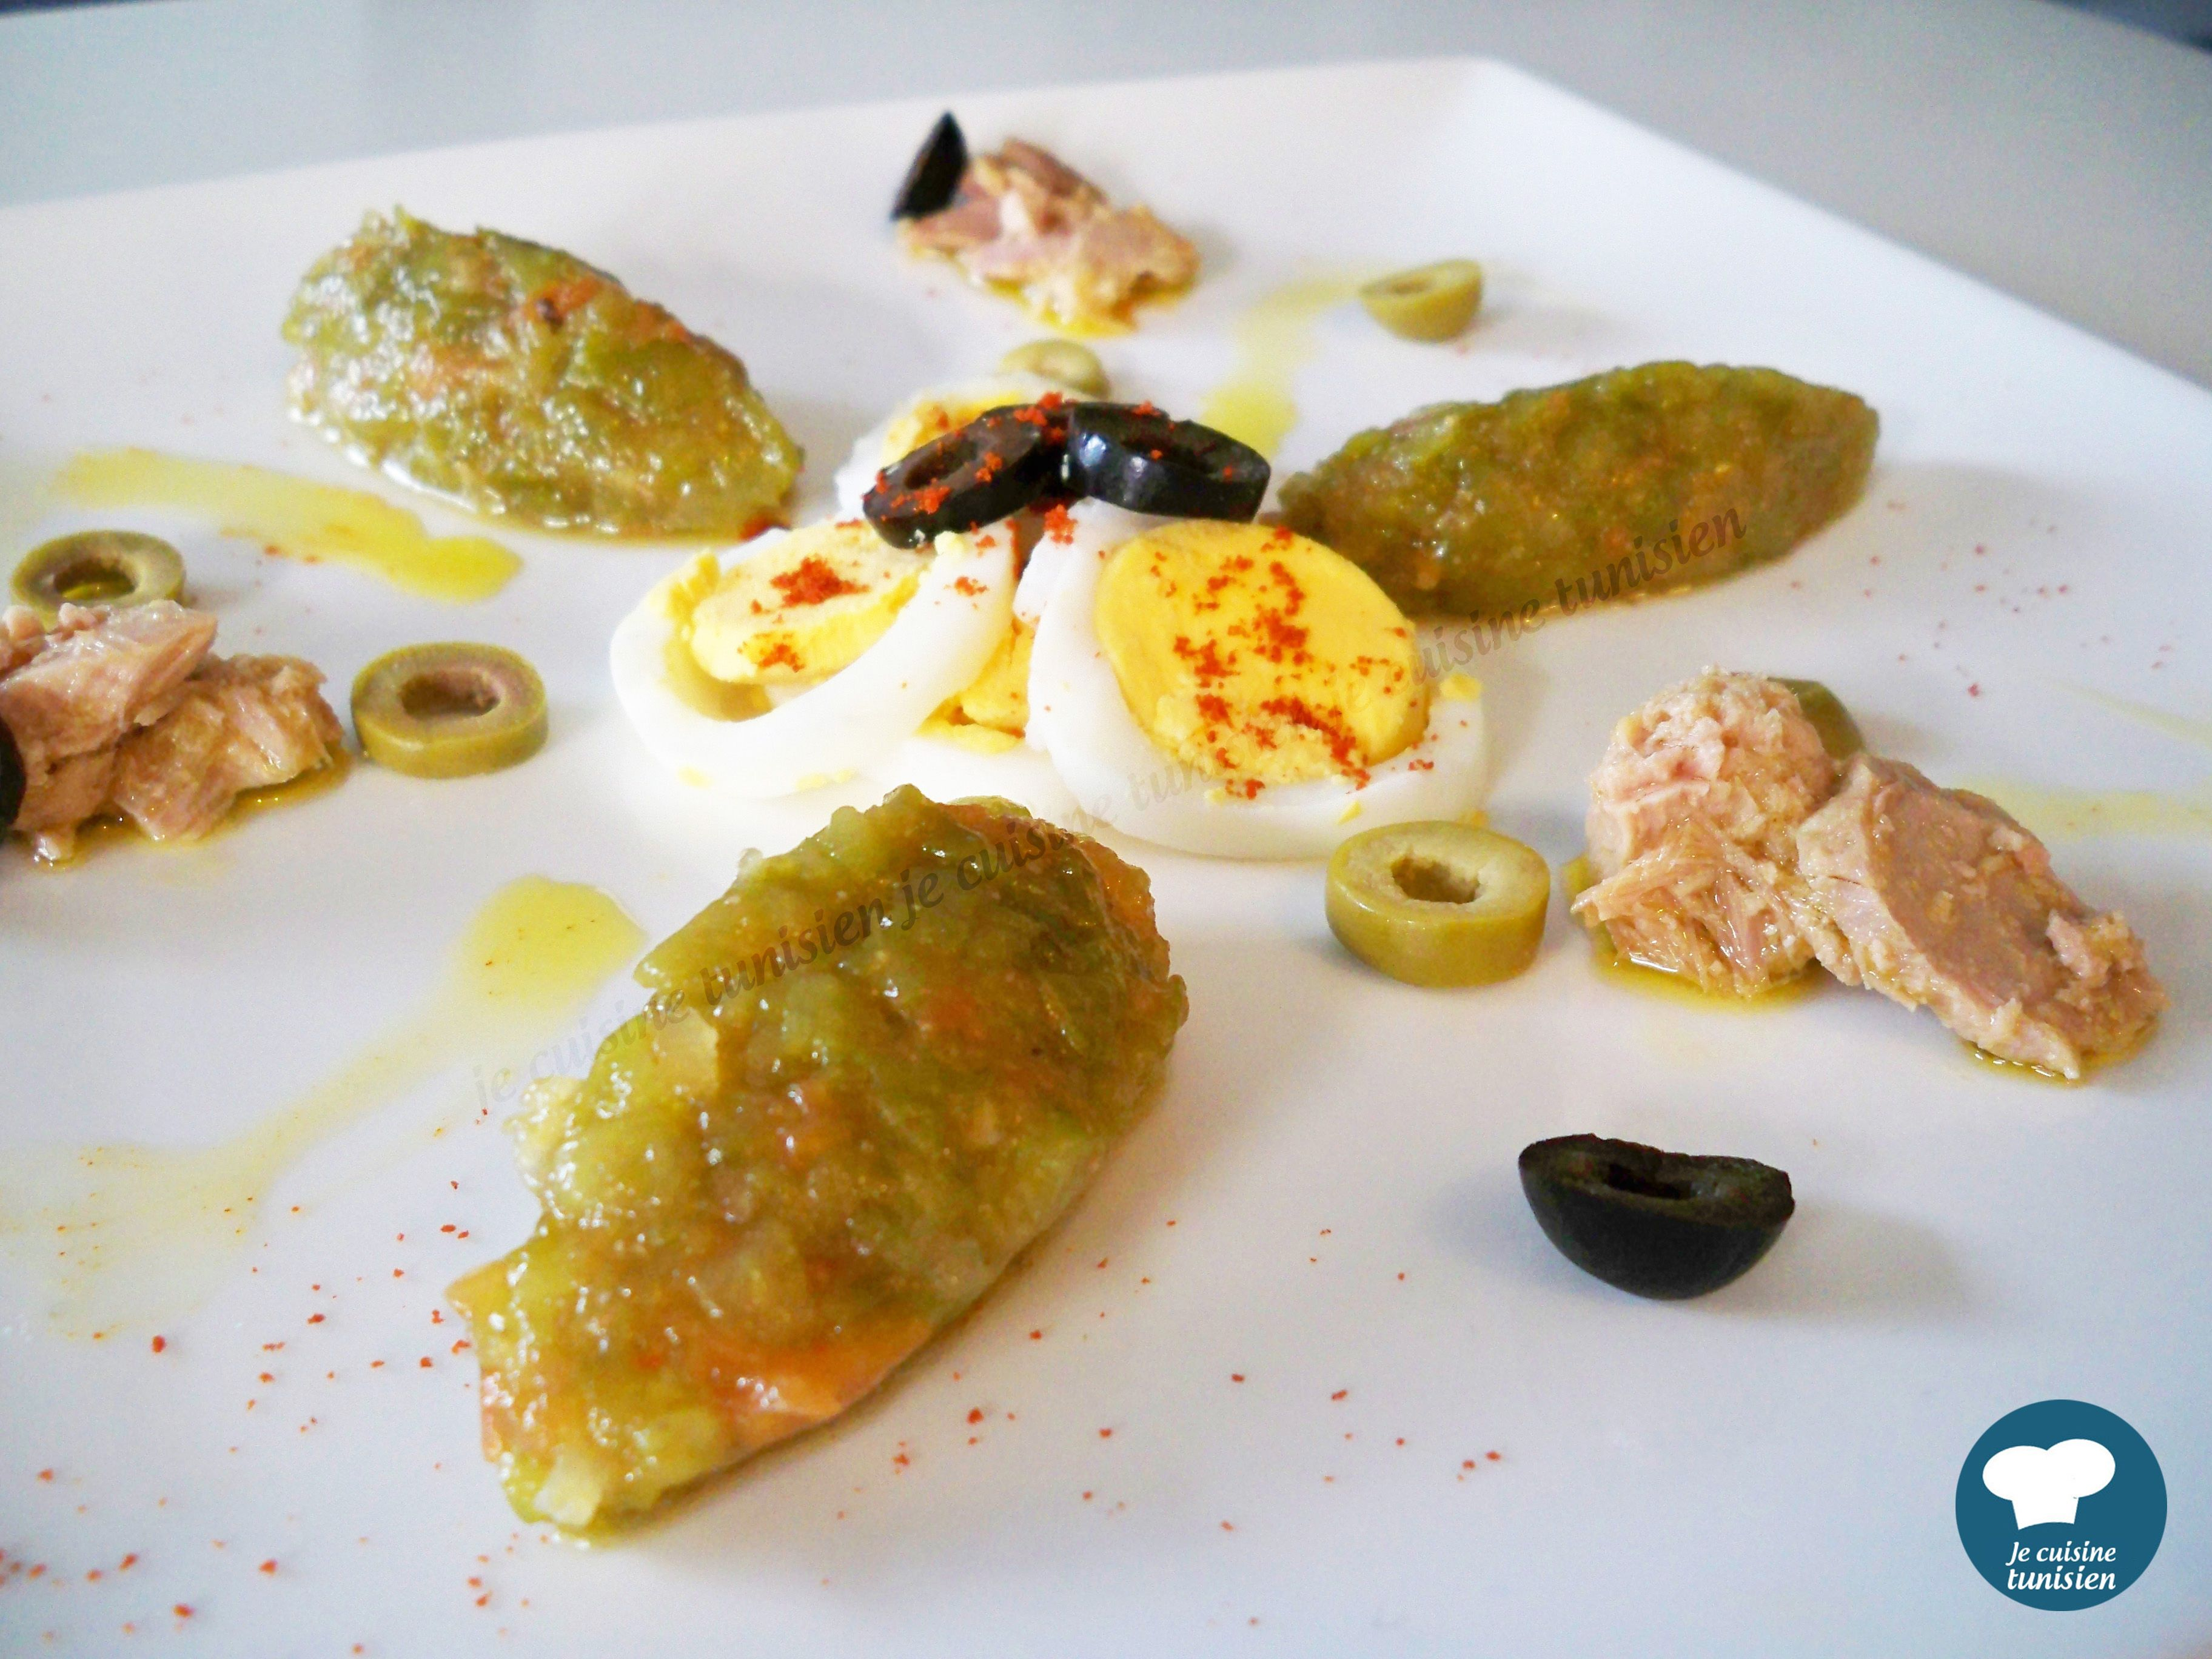 Slata mechouia / Recette tunisienne. Recette ici : https://www.youtube.com/watch?v=VoAztzavbxc